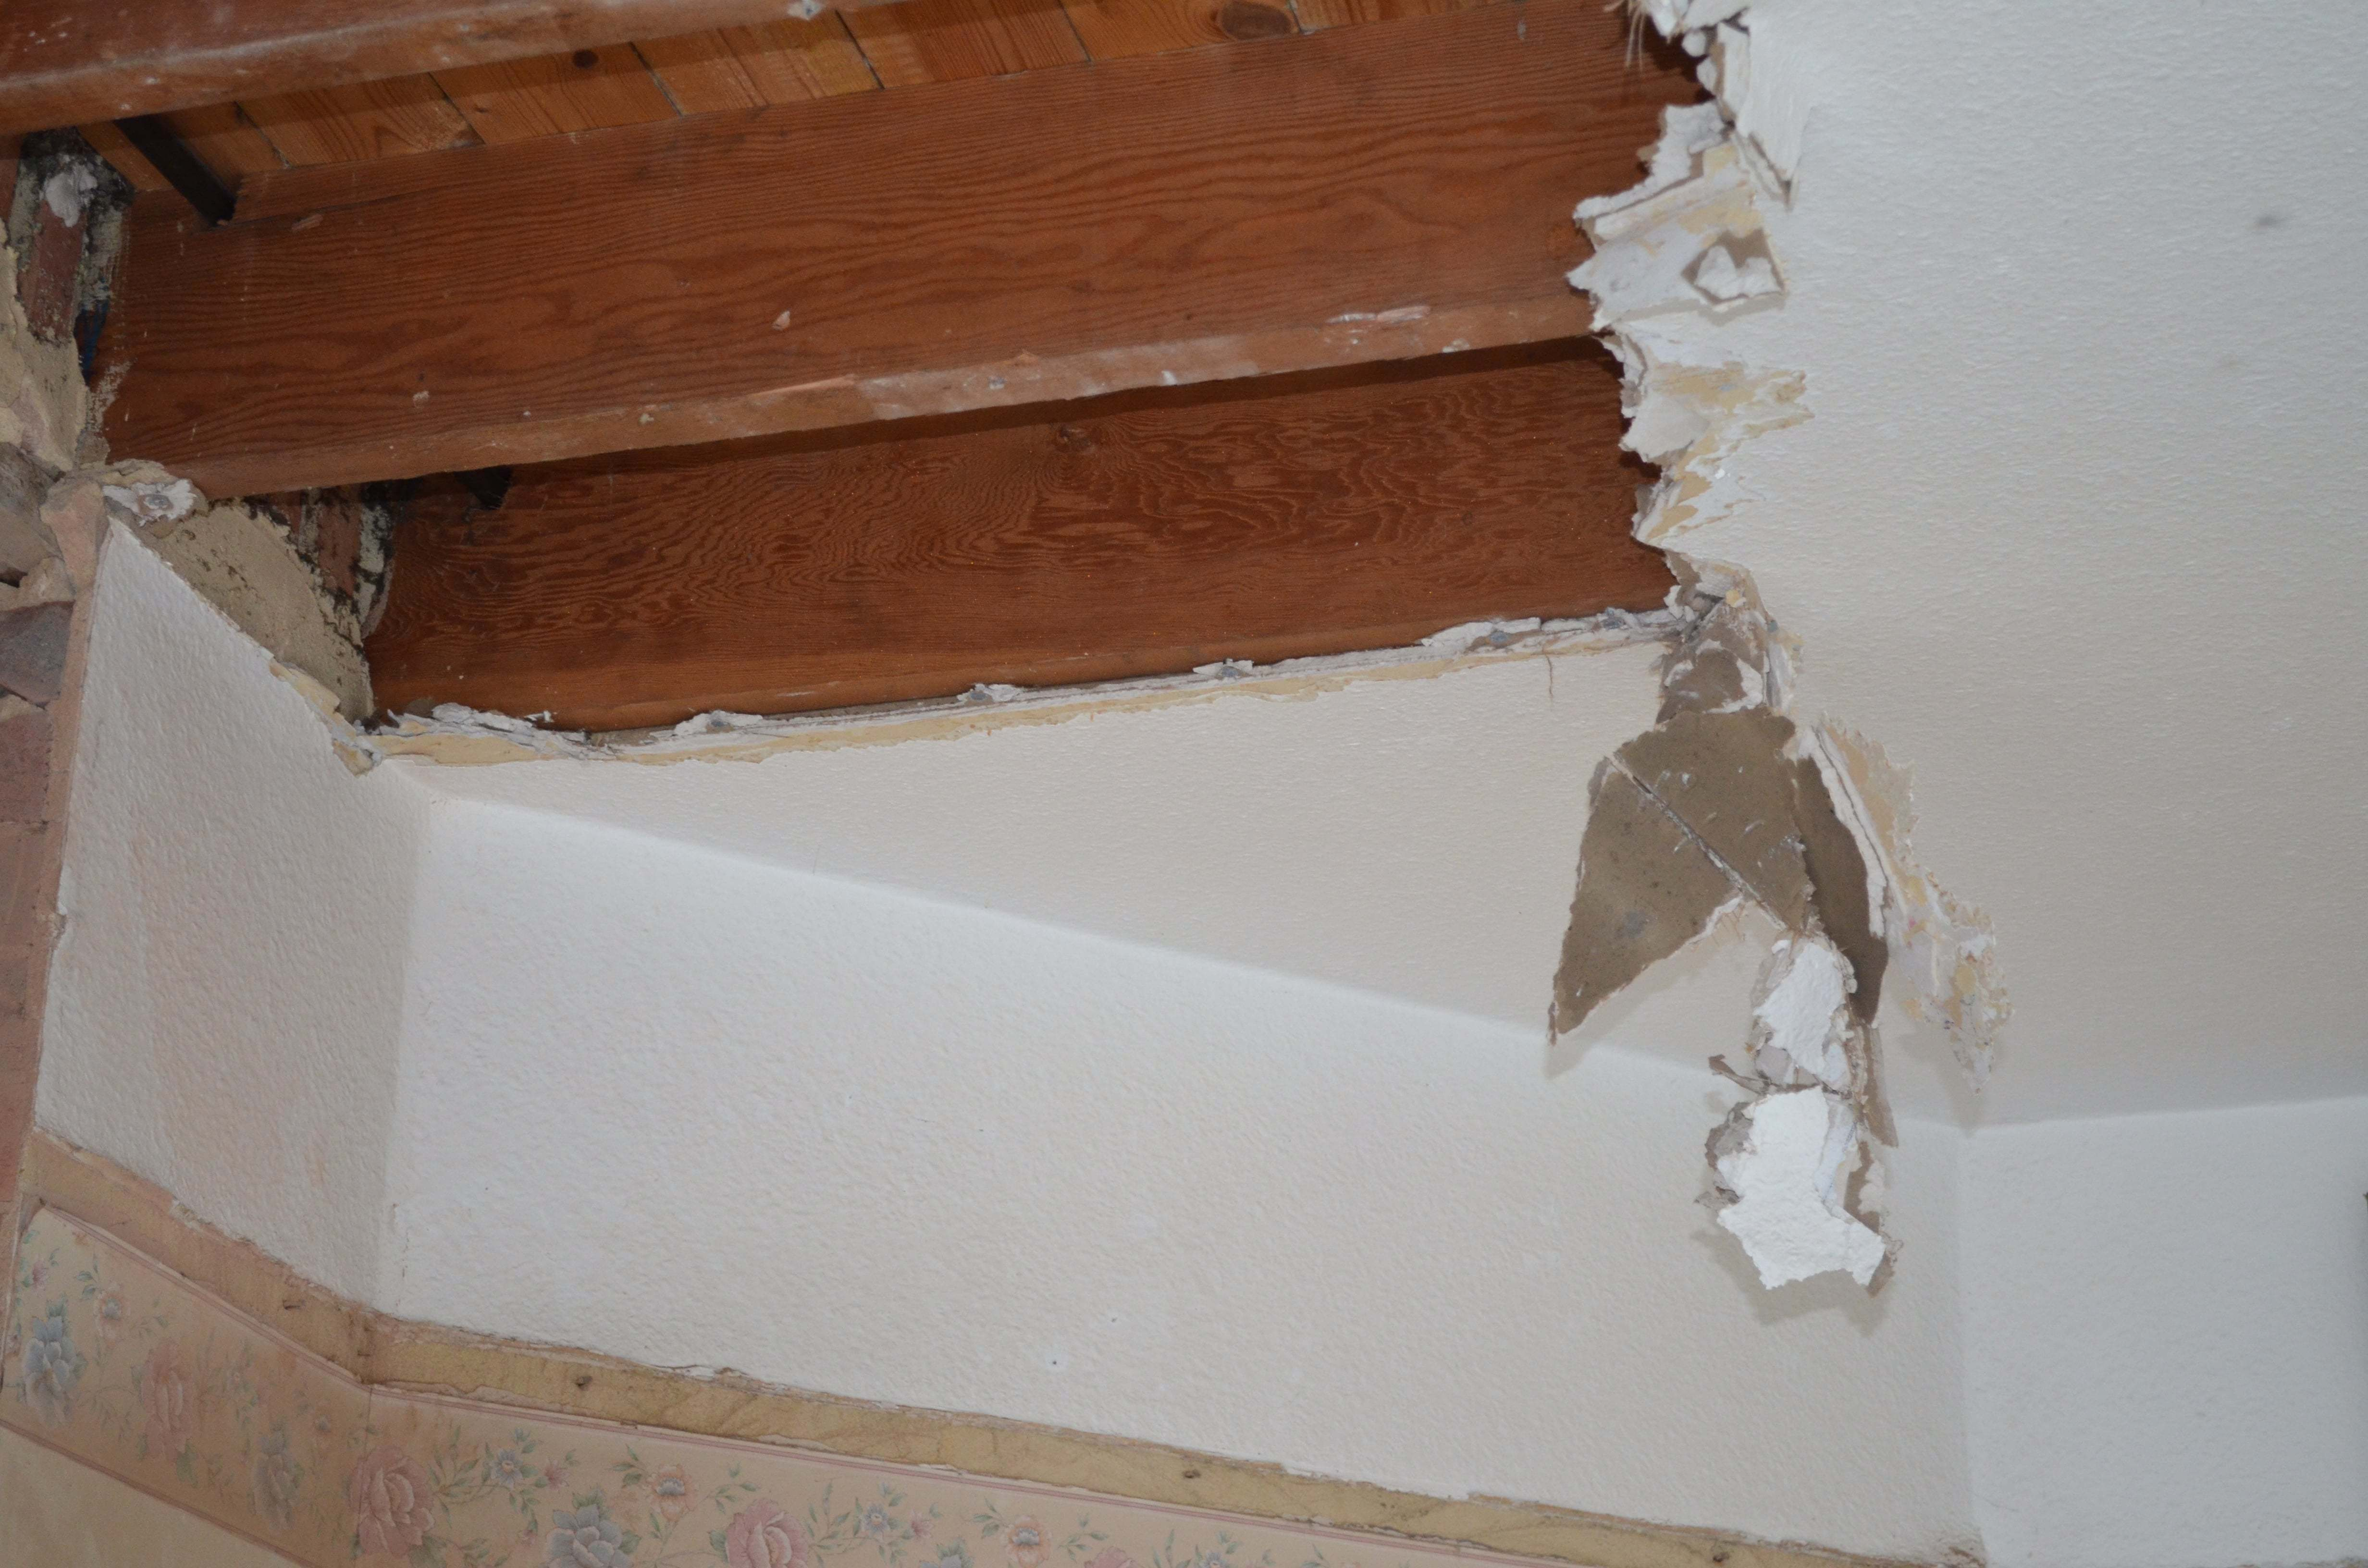 water leaking from upstairs